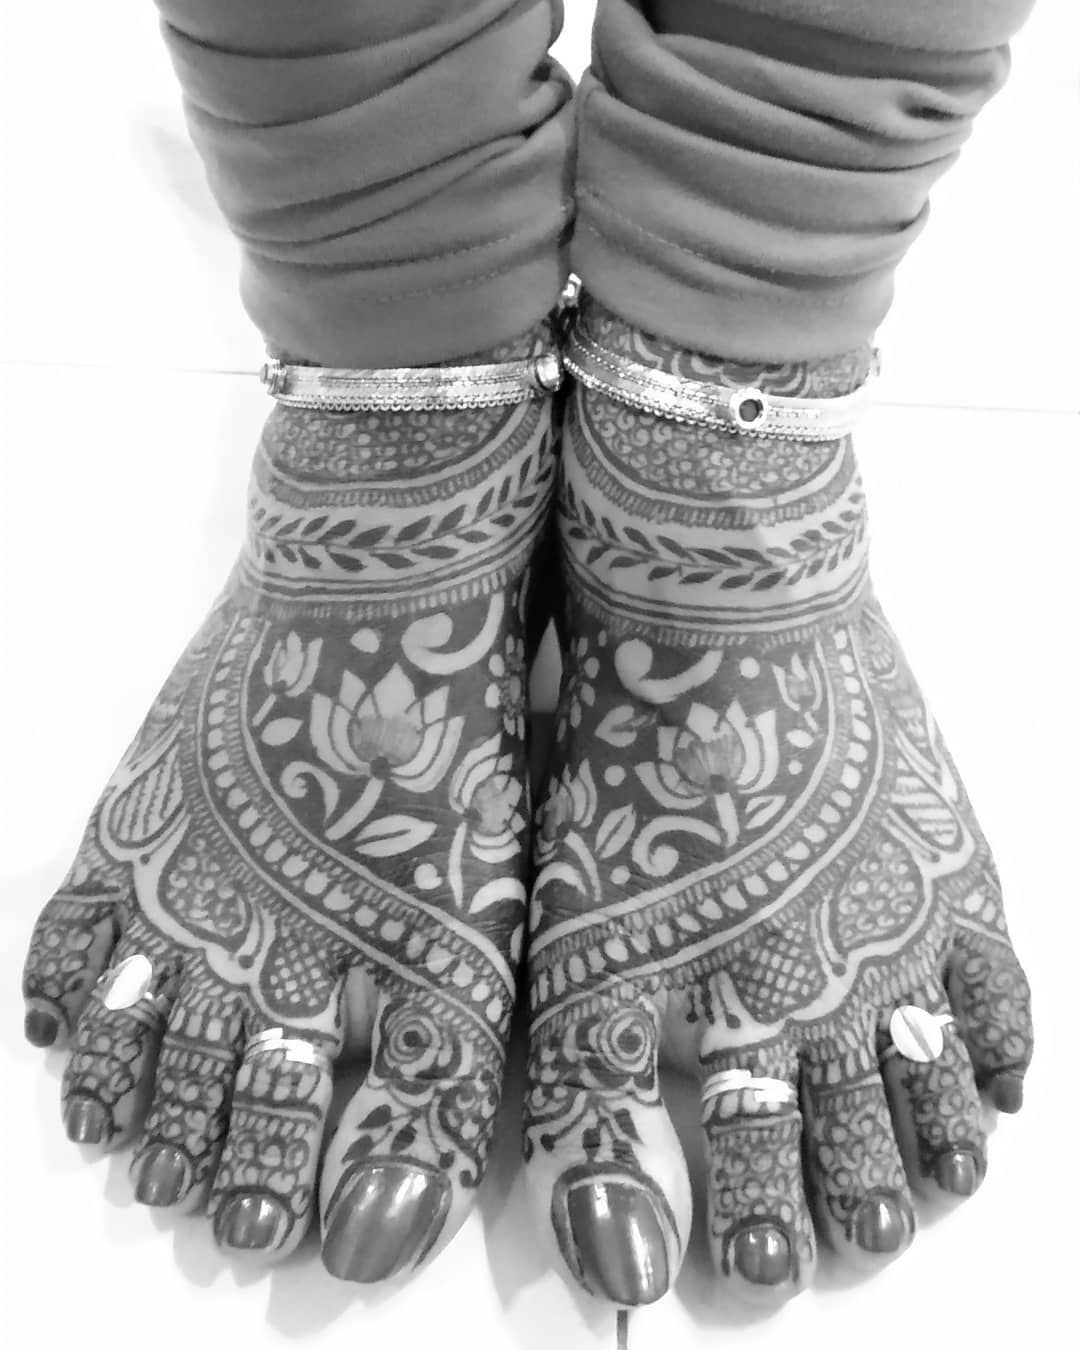 #blackandwhite #monochrome #bnwphotos #bnw #bnwpune #monochromepune #mehndi #hennatattoo #heena #toerings #anklet #mobilephotography #mopho #mophoindia #mia1 #shotonmia1 #miphotography #pune #hennaart #patiencetesting #intricate #heenadesign #symmetry #symmetricaldesign #perfection #mirrorimage #indianbride #bride